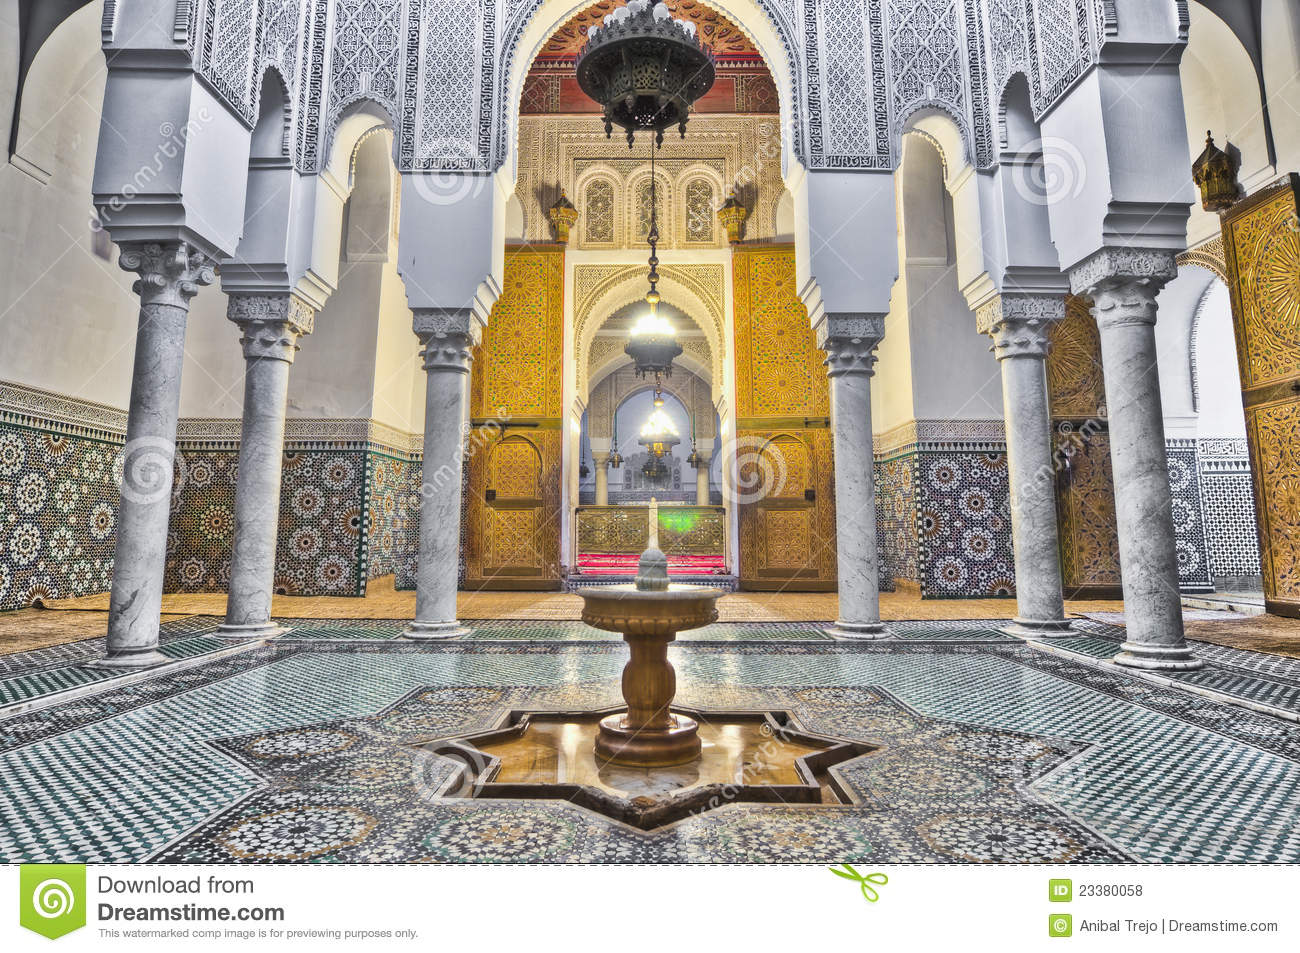 Meknes Morocco  City pictures : Moulay Ismail Mausoleum At Meknes, Morocco Royalty Free Stock Photos ...